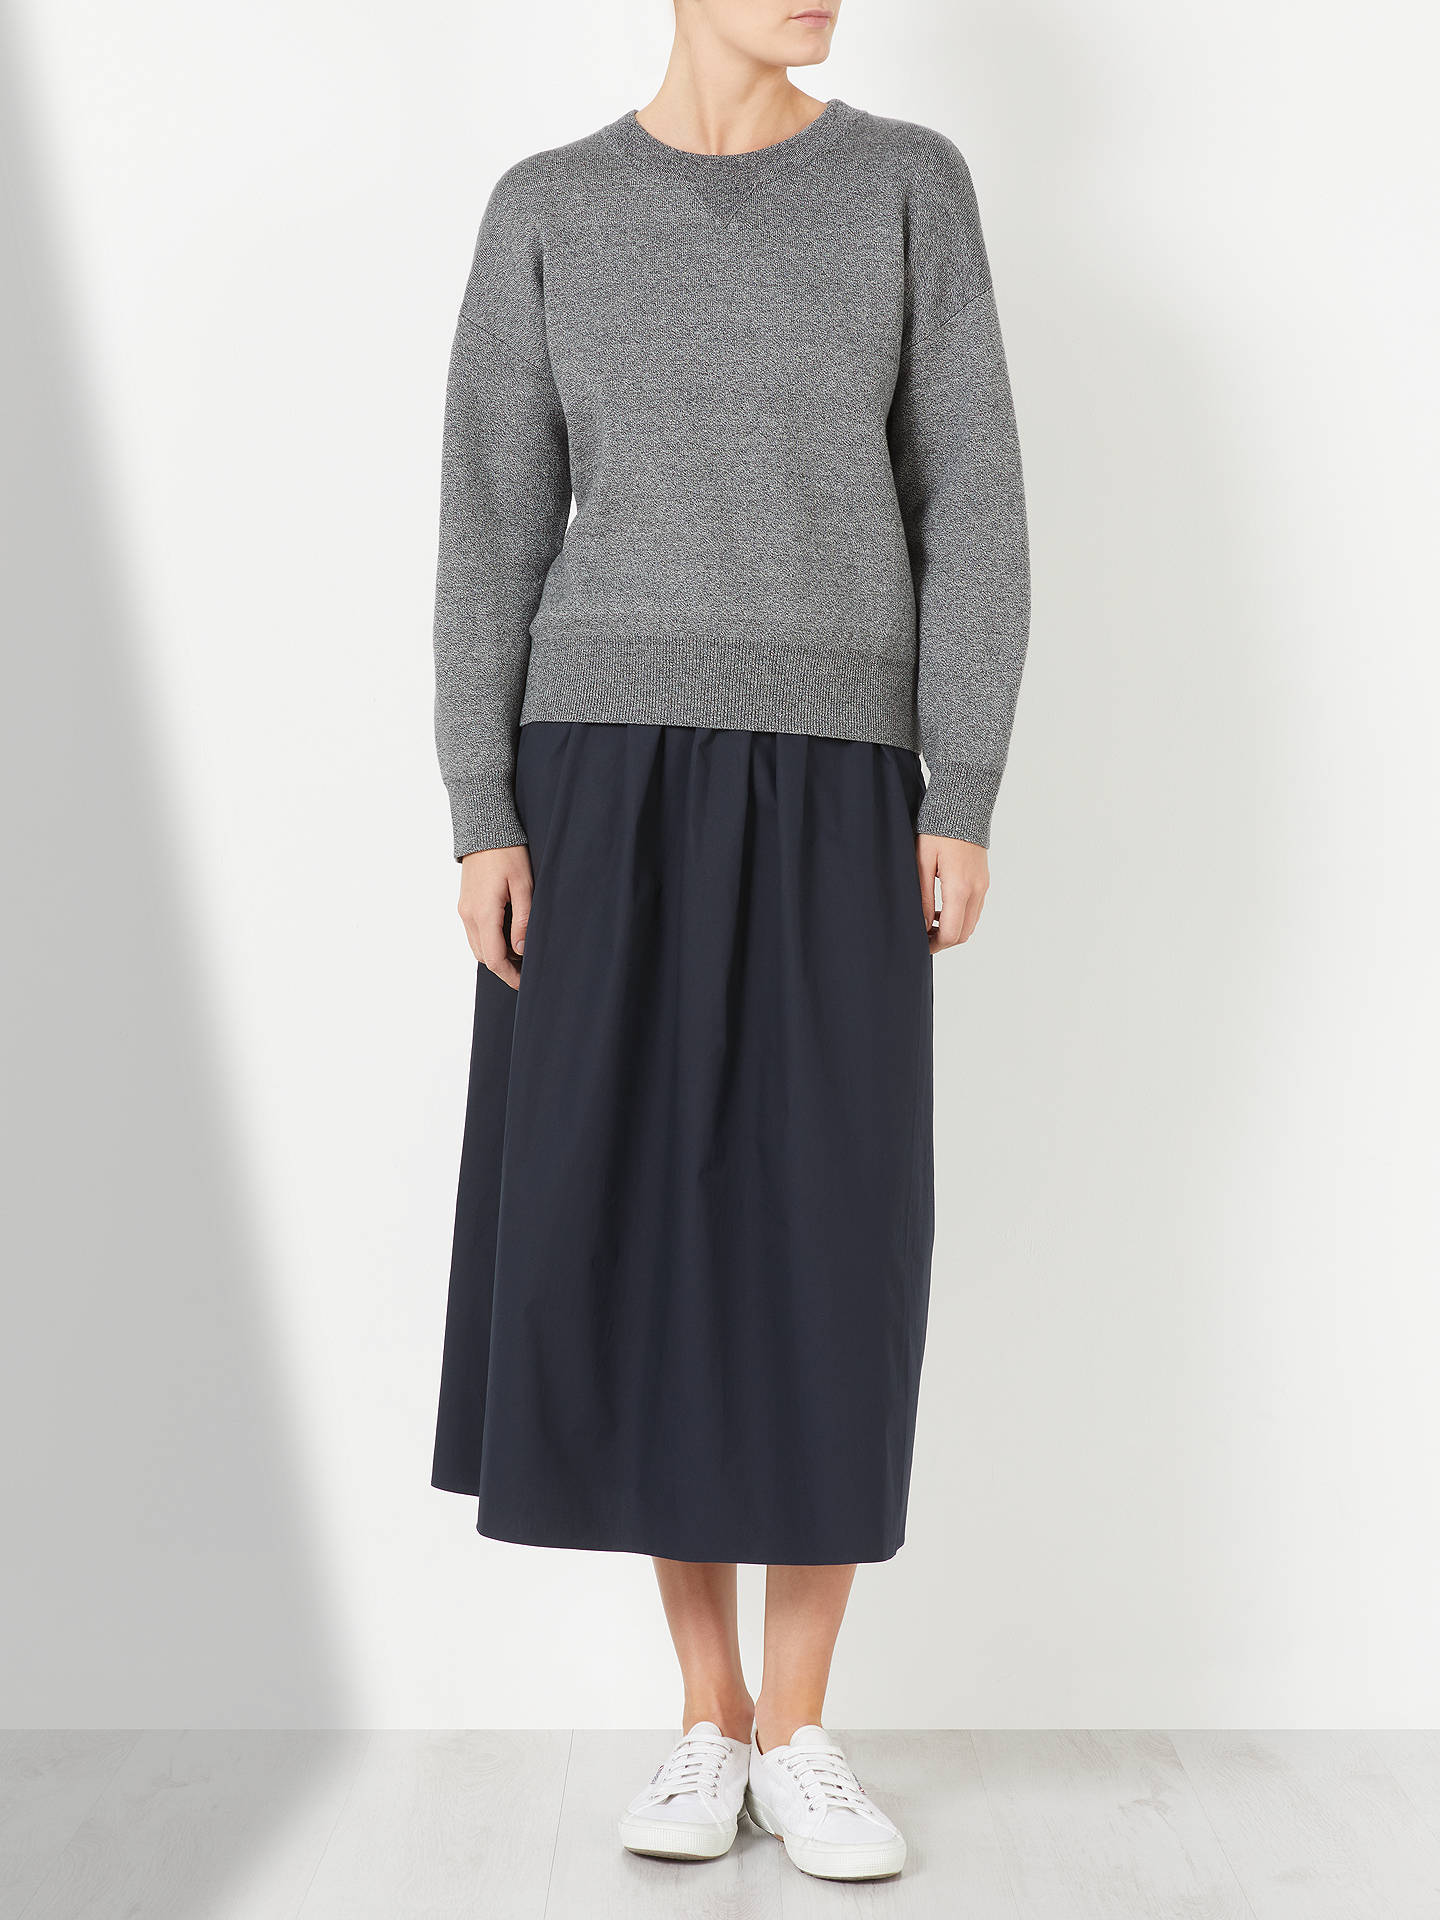 BuyKin Compact Cotton Jumper, Grey, S Online at johnlewis.com